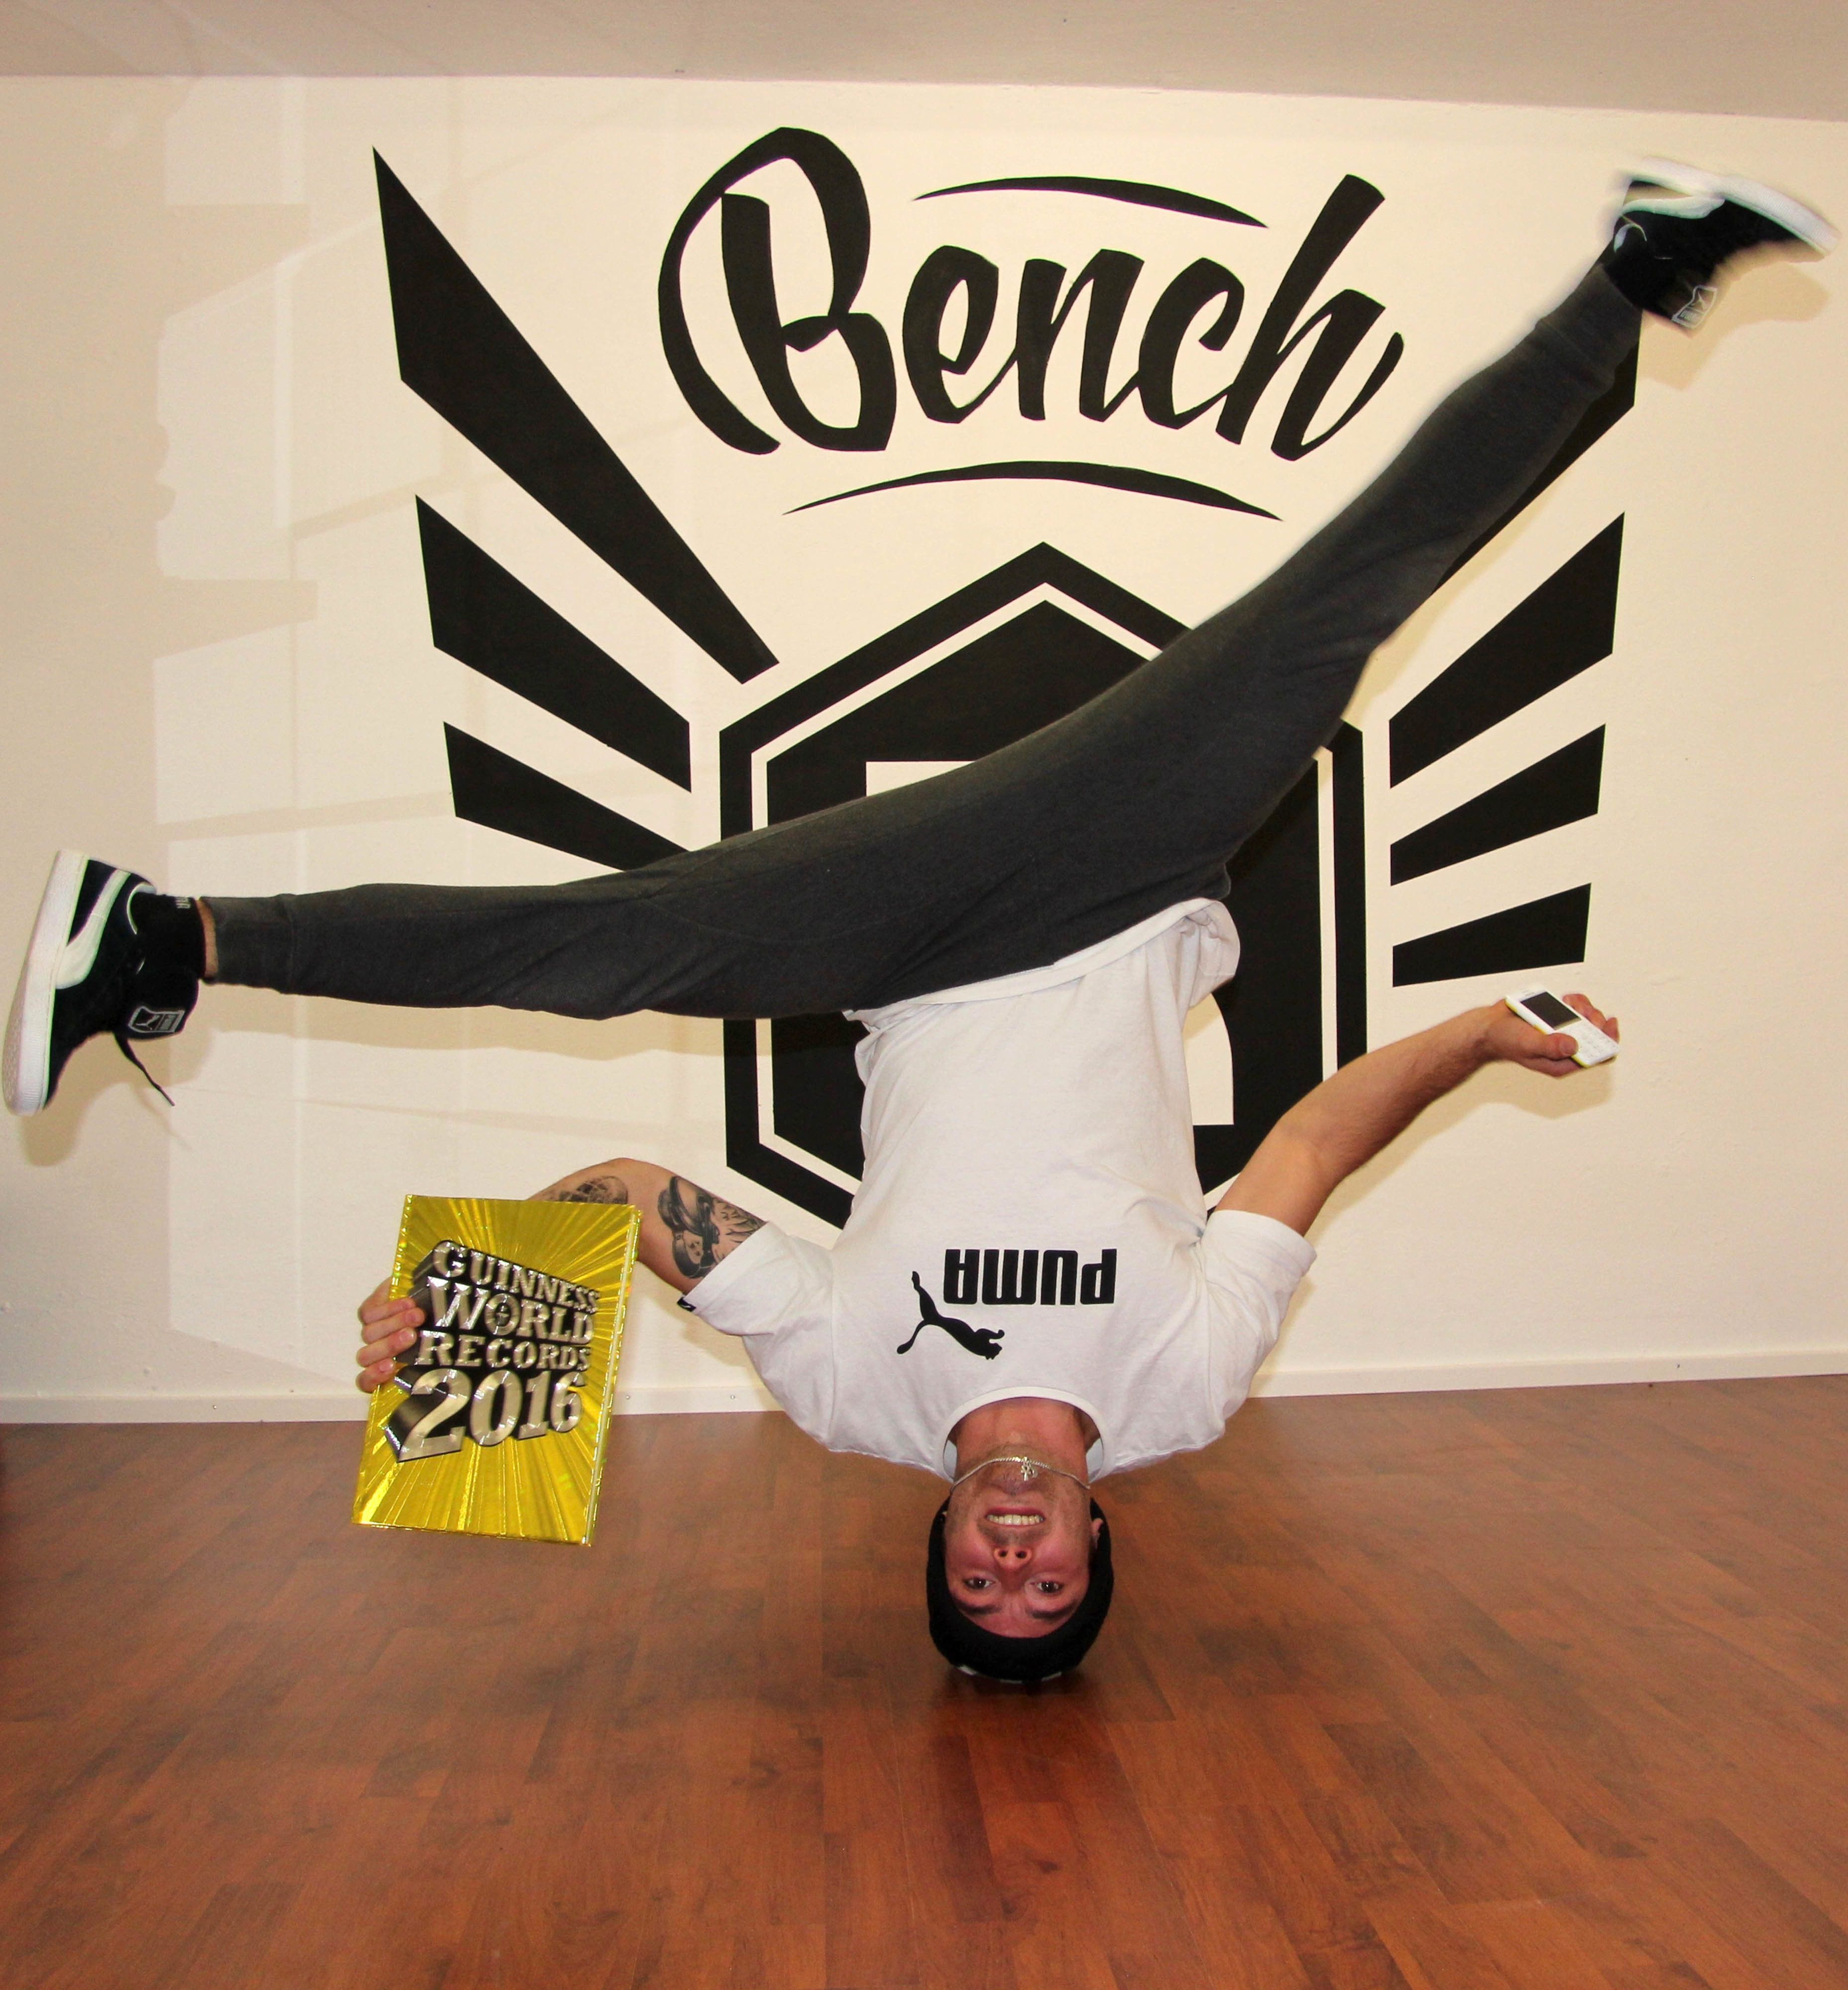 The fastest time to type a text message (SMS) on a mobile phone while performing head spins is 56.65 seconds and achieved by Benedikt Mordstein, in Freising, Bavaria, Germany, in celebration of Guinness World Records Day, on 12 November 2015